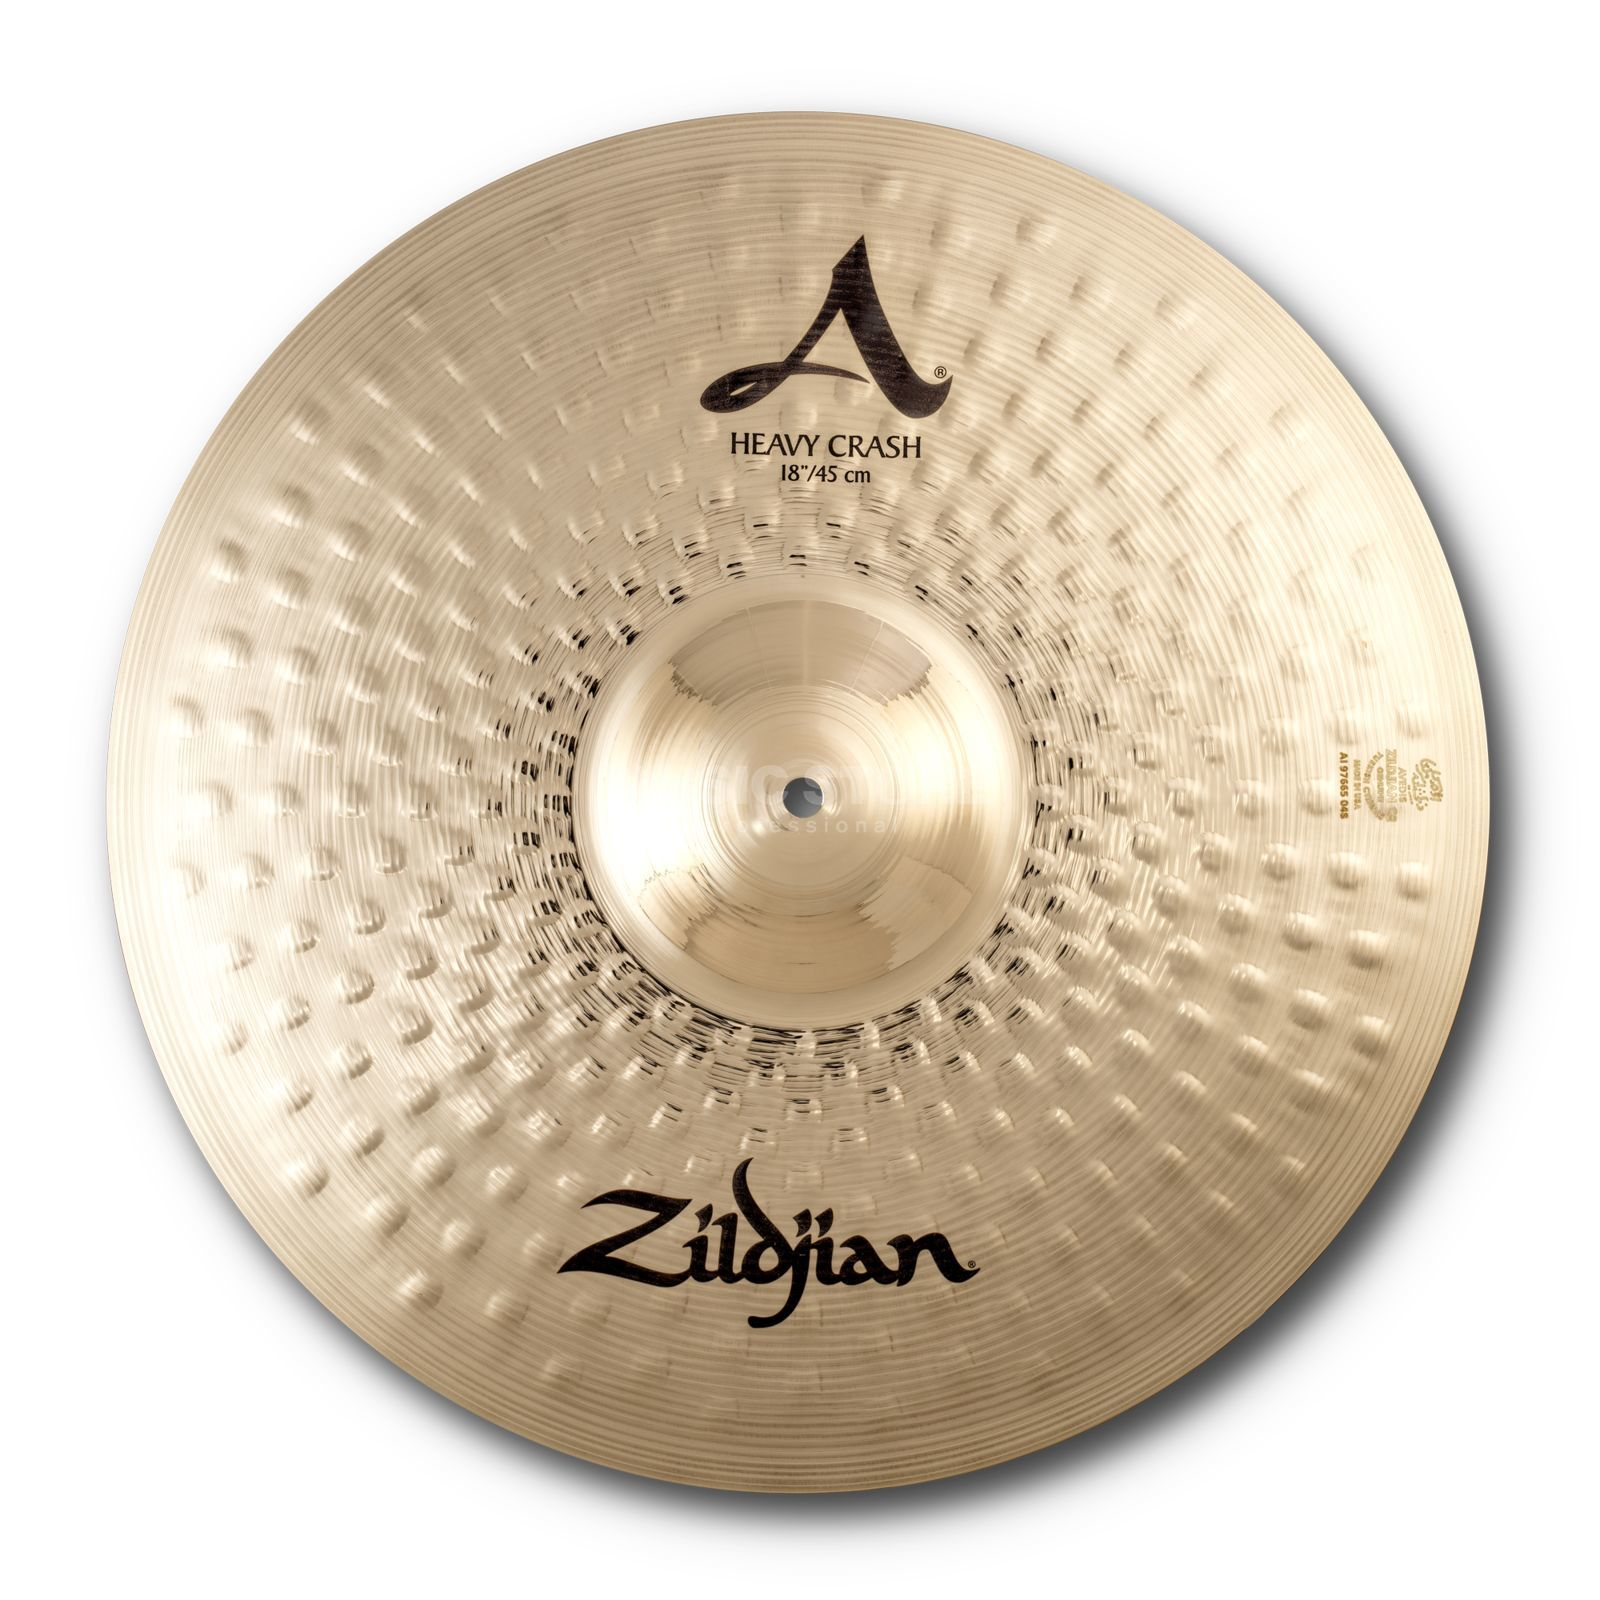 "Zildjian A' Zildjian Heavy Crash 18"", Brilliant Finish Produktbild"